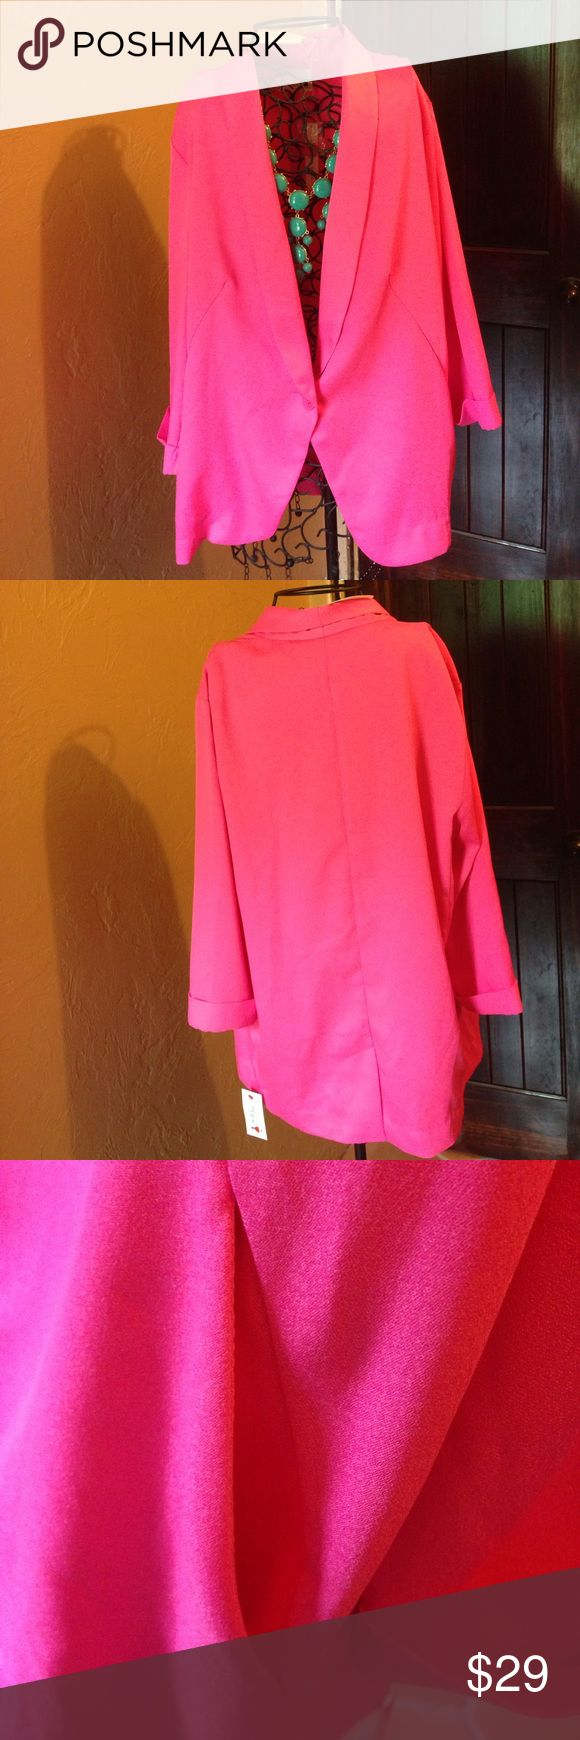 """NWT Mustard Seed Hot Pink Blazer NWT Mustard Seed hot pink flowy blazer. Size large. Fits loose. Paired with a pair of jeans 👖. Measurements: chest laying flat 24""""/length 28""""/shoulder to shoulder 18.5""""/ sleeve 19"""". New with tag. Mustard Seed Jackets & Coats Blazers"""